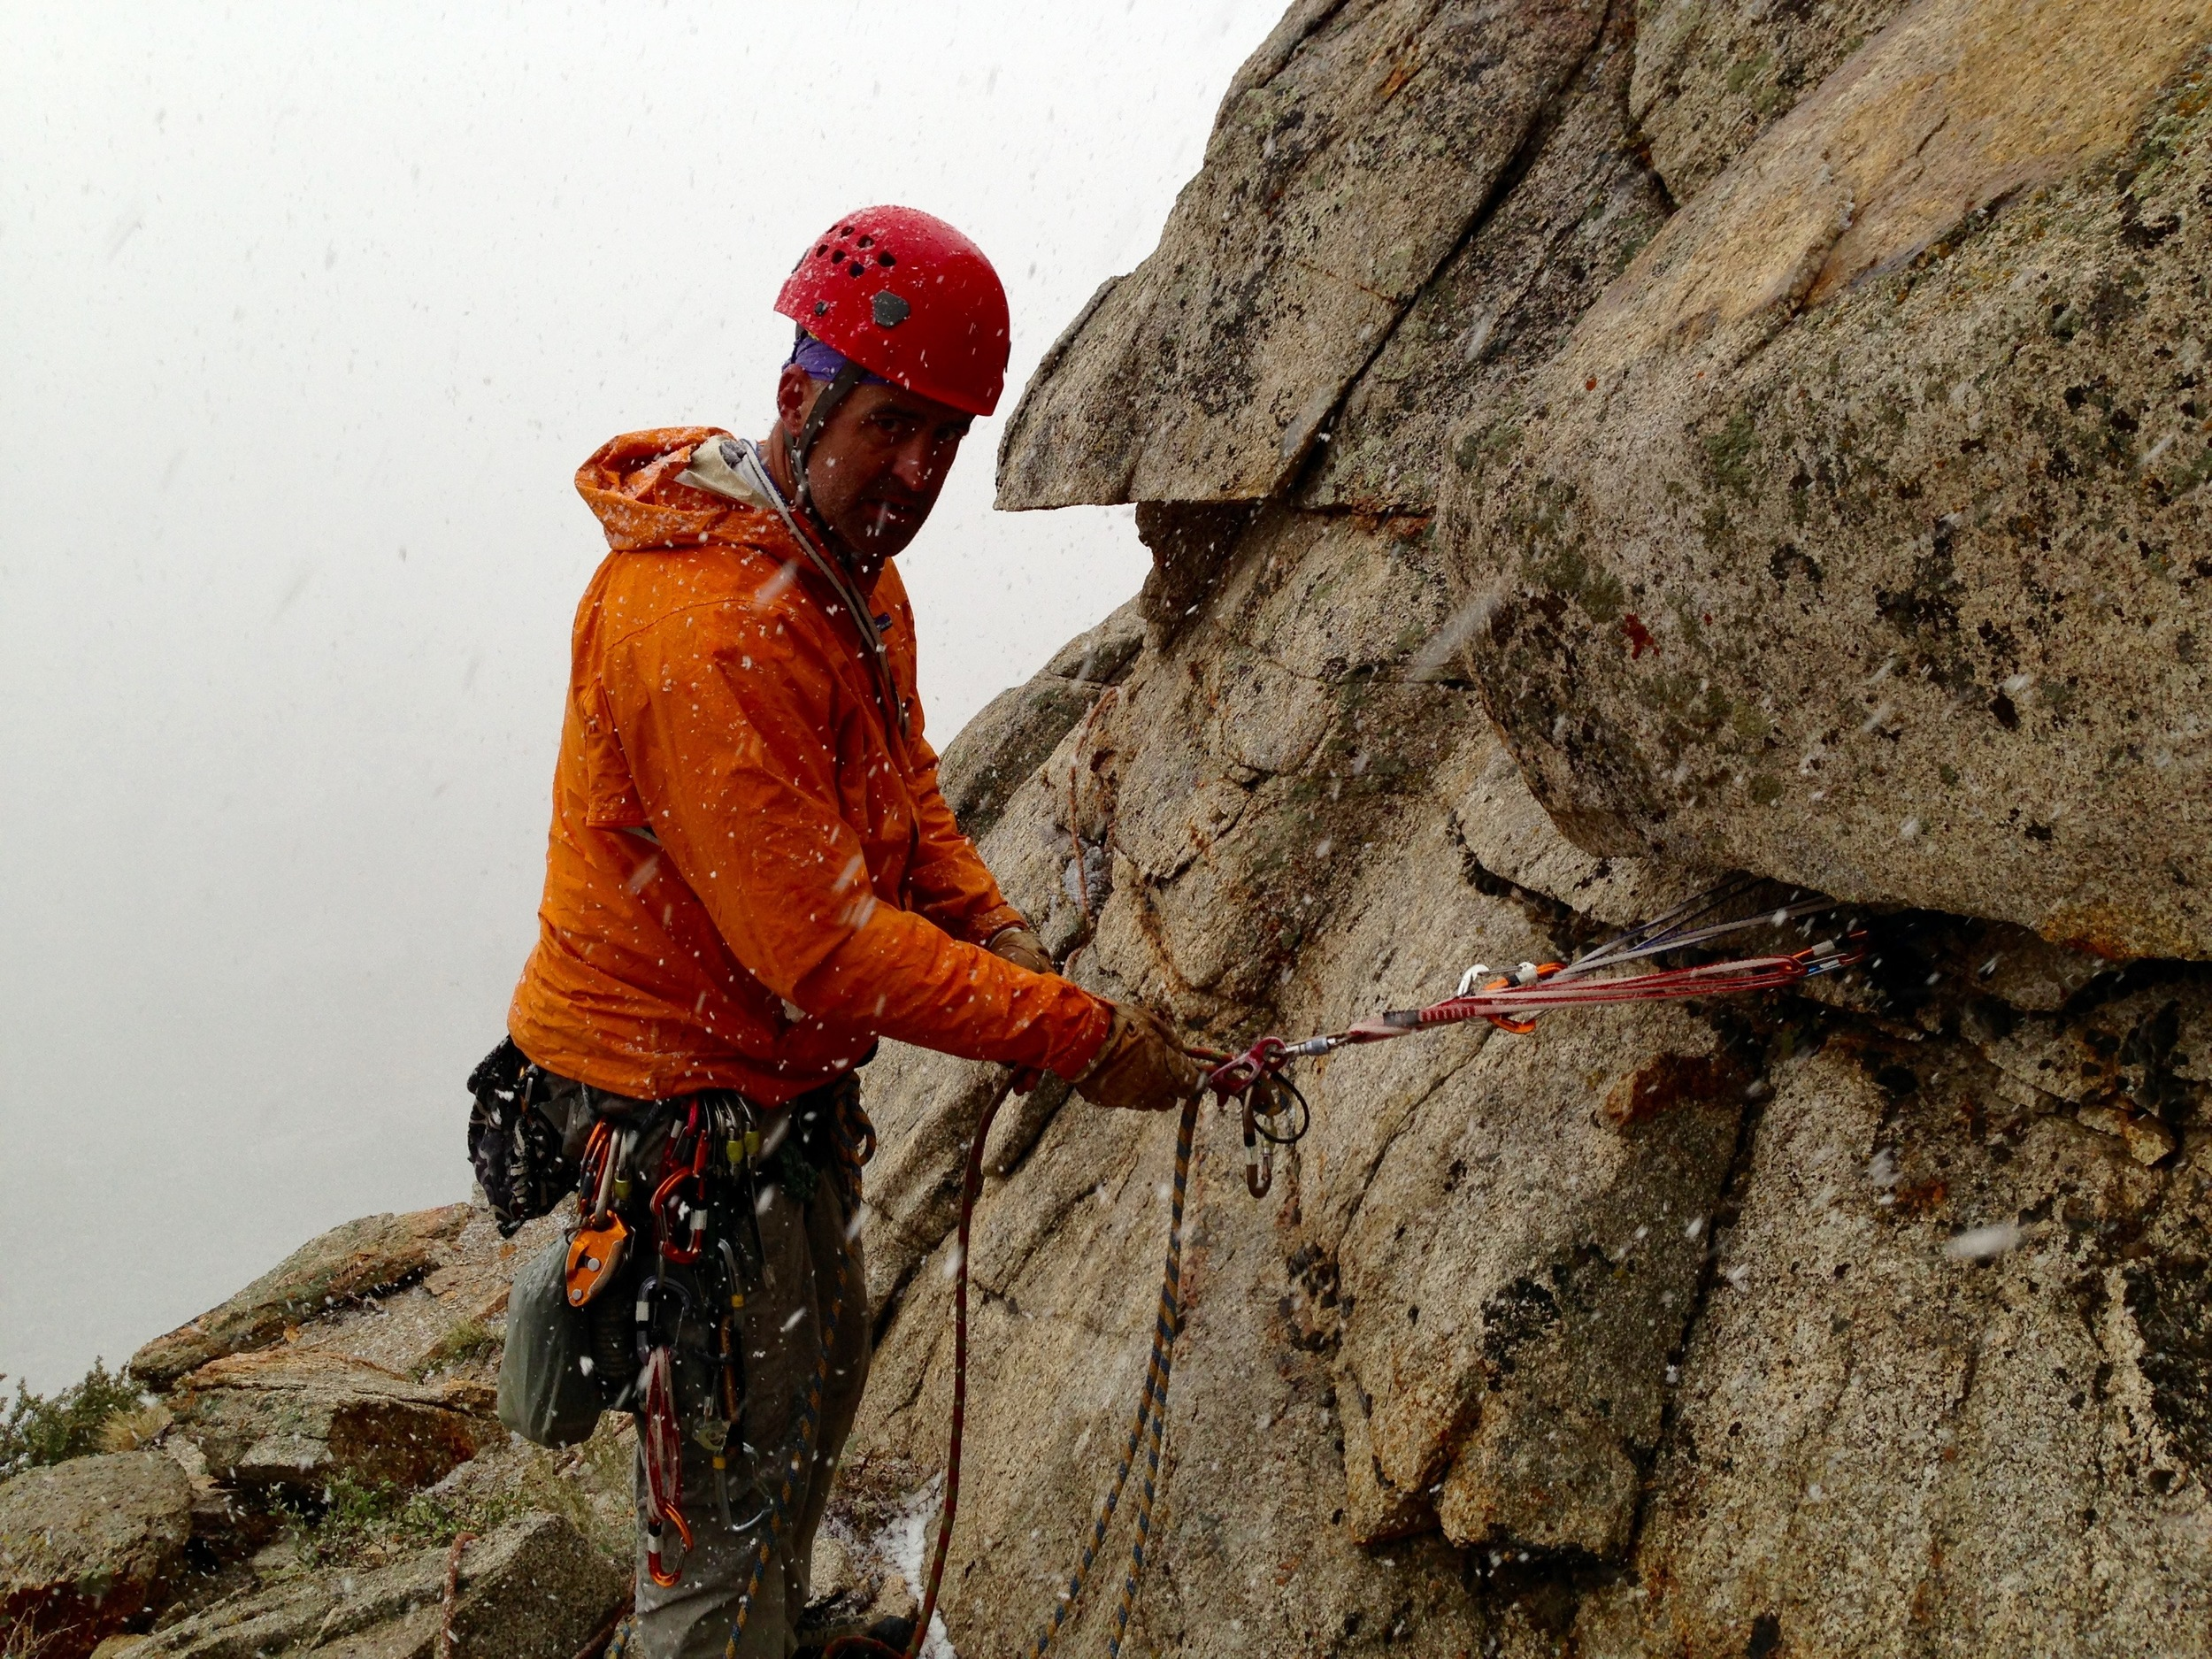 We did another climb in Pine Creek Canyon, and got caught in a snowstorm about 5 pitches up.